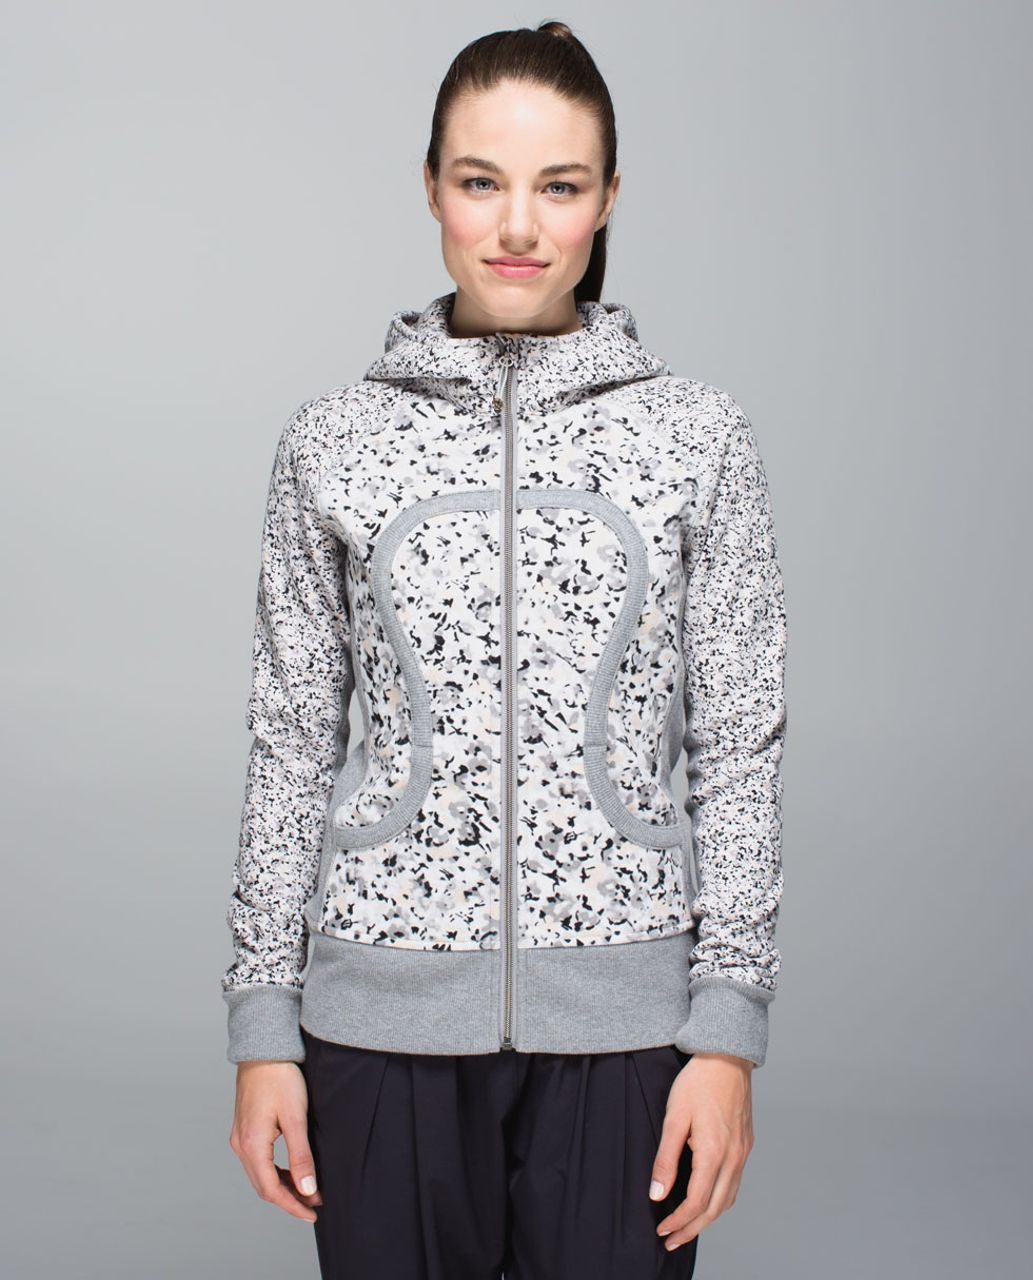 Lululemon Scuba Hoodie II - Not So Petite Fleur Silver Spoon / Heathered Medium Grey / Petite Fleur Silver Spoon